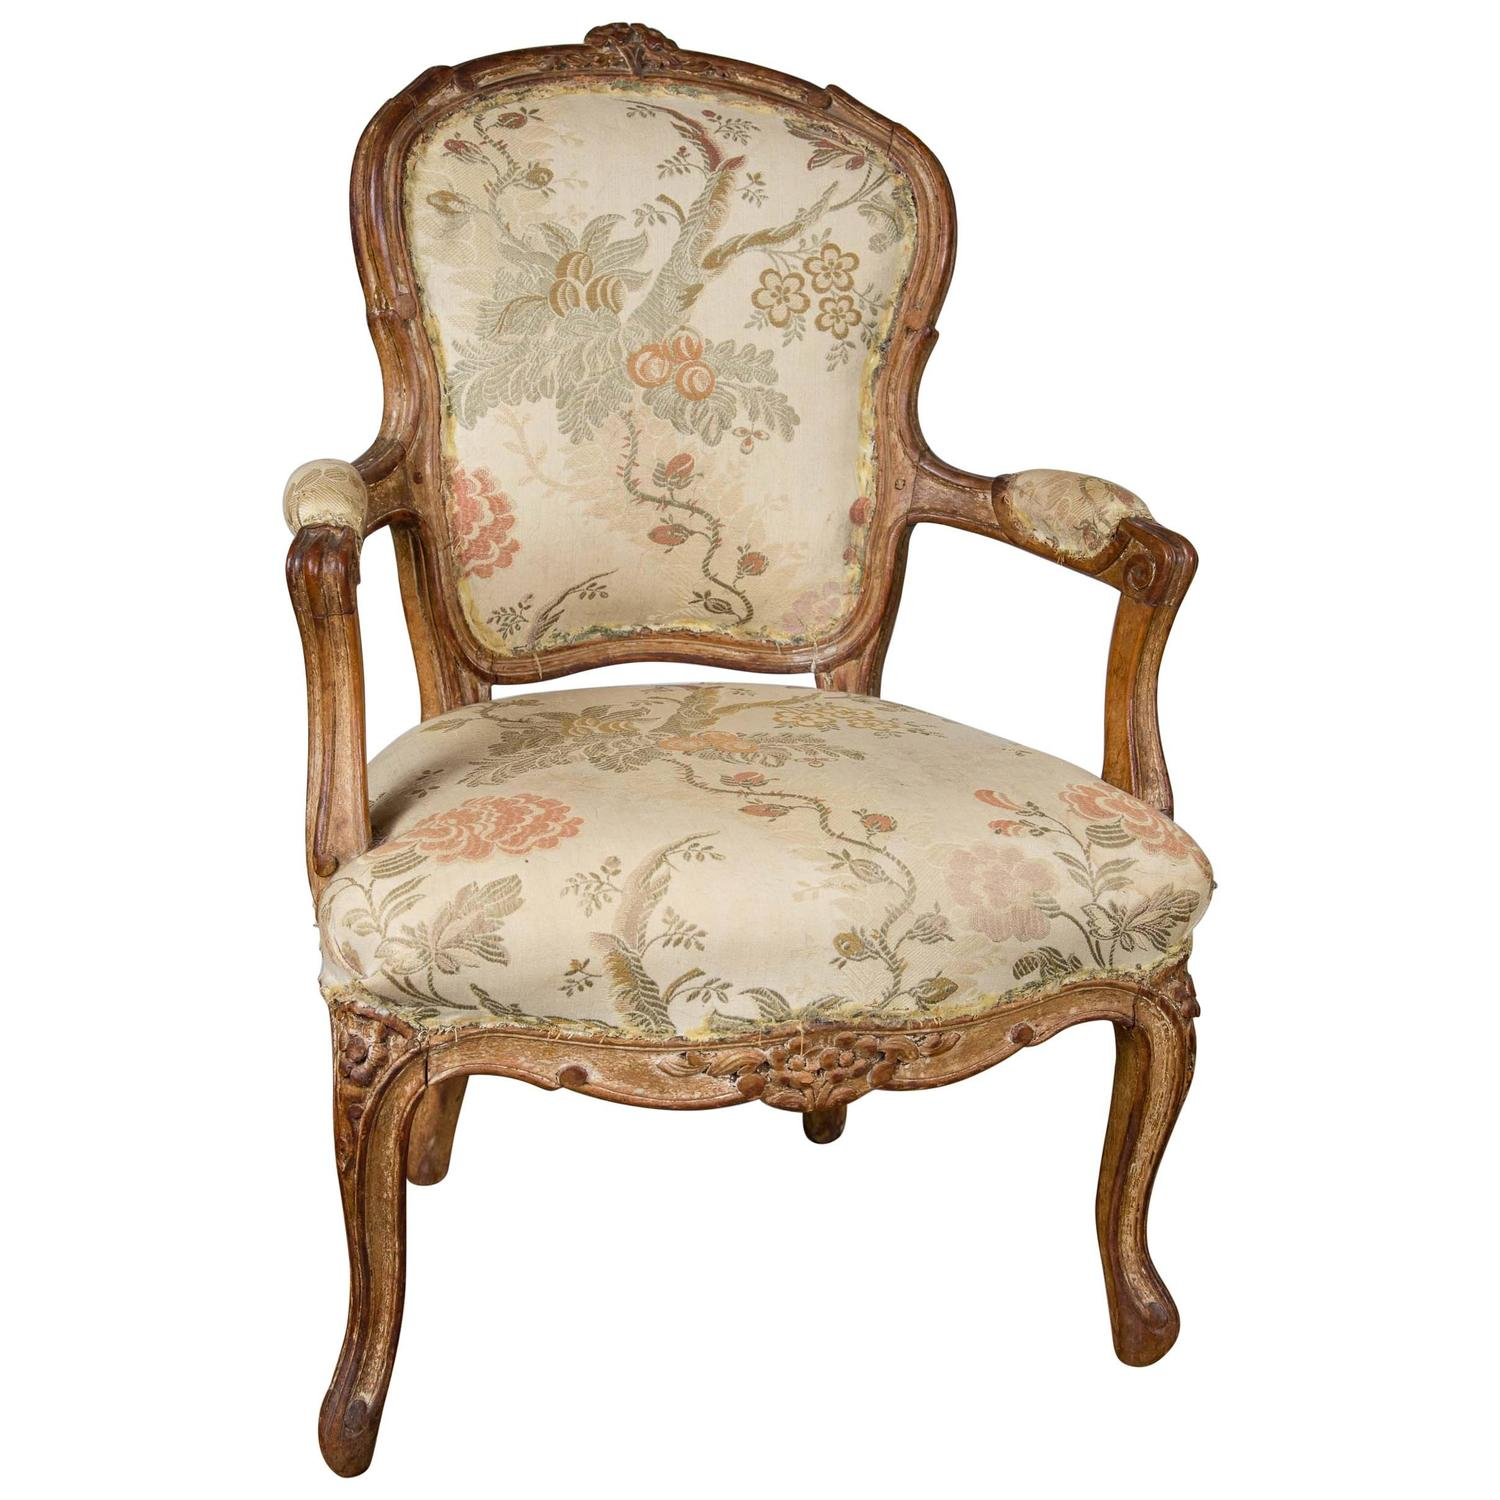 period louis xv child 39 s fauteuil at 1stdibs. Black Bedroom Furniture Sets. Home Design Ideas